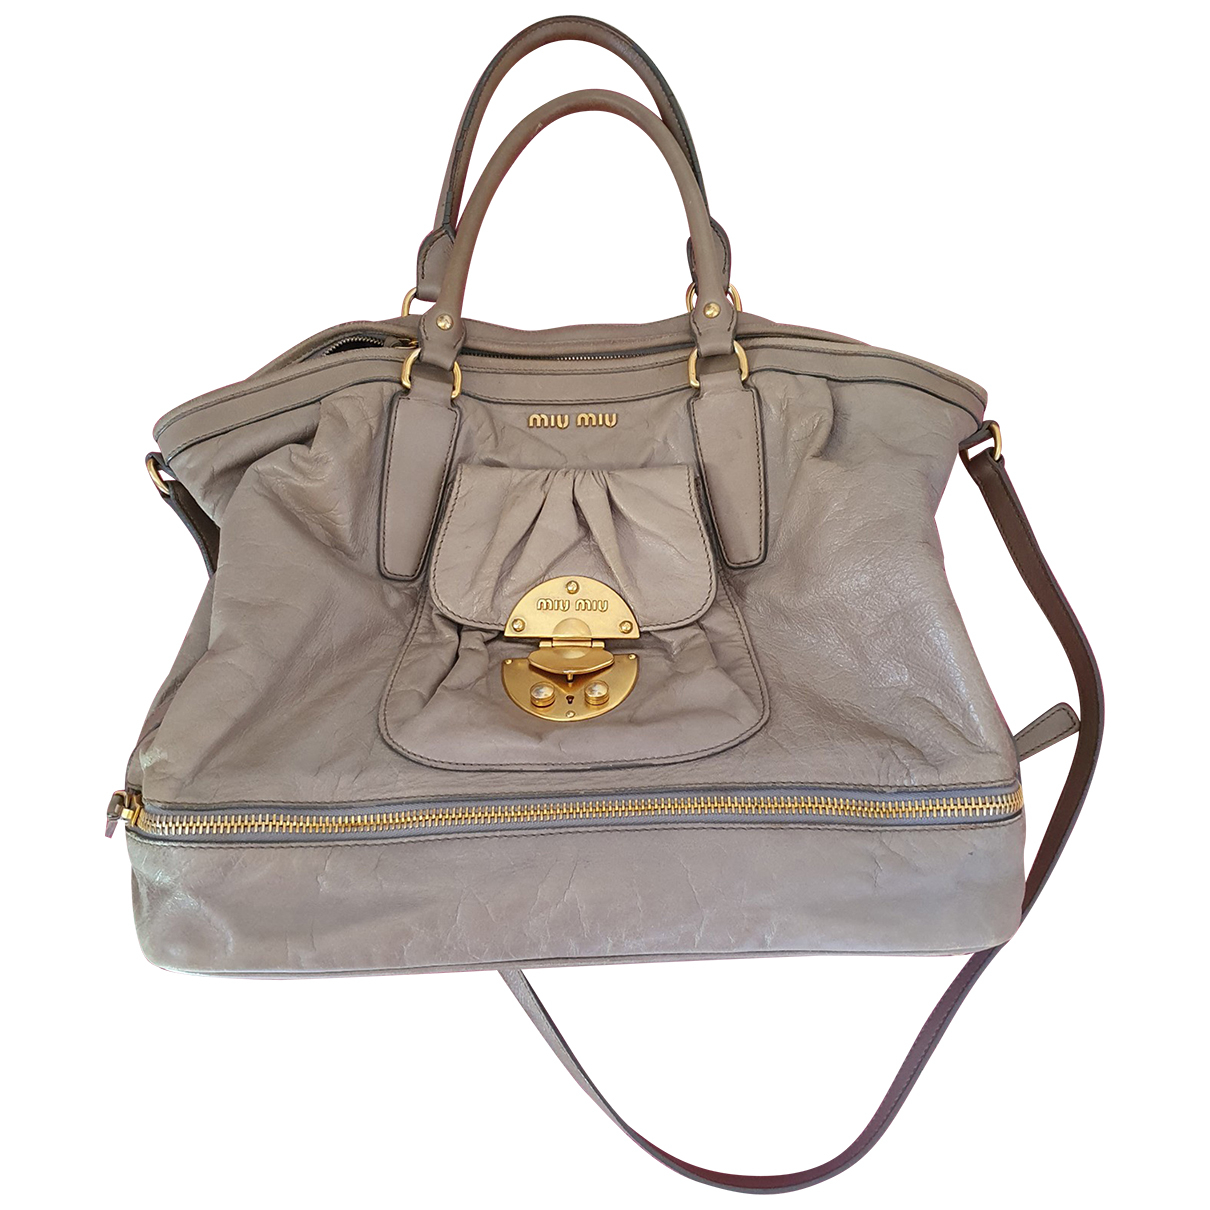 Miu Miu Bow bag Grey Leather handbag for Women N